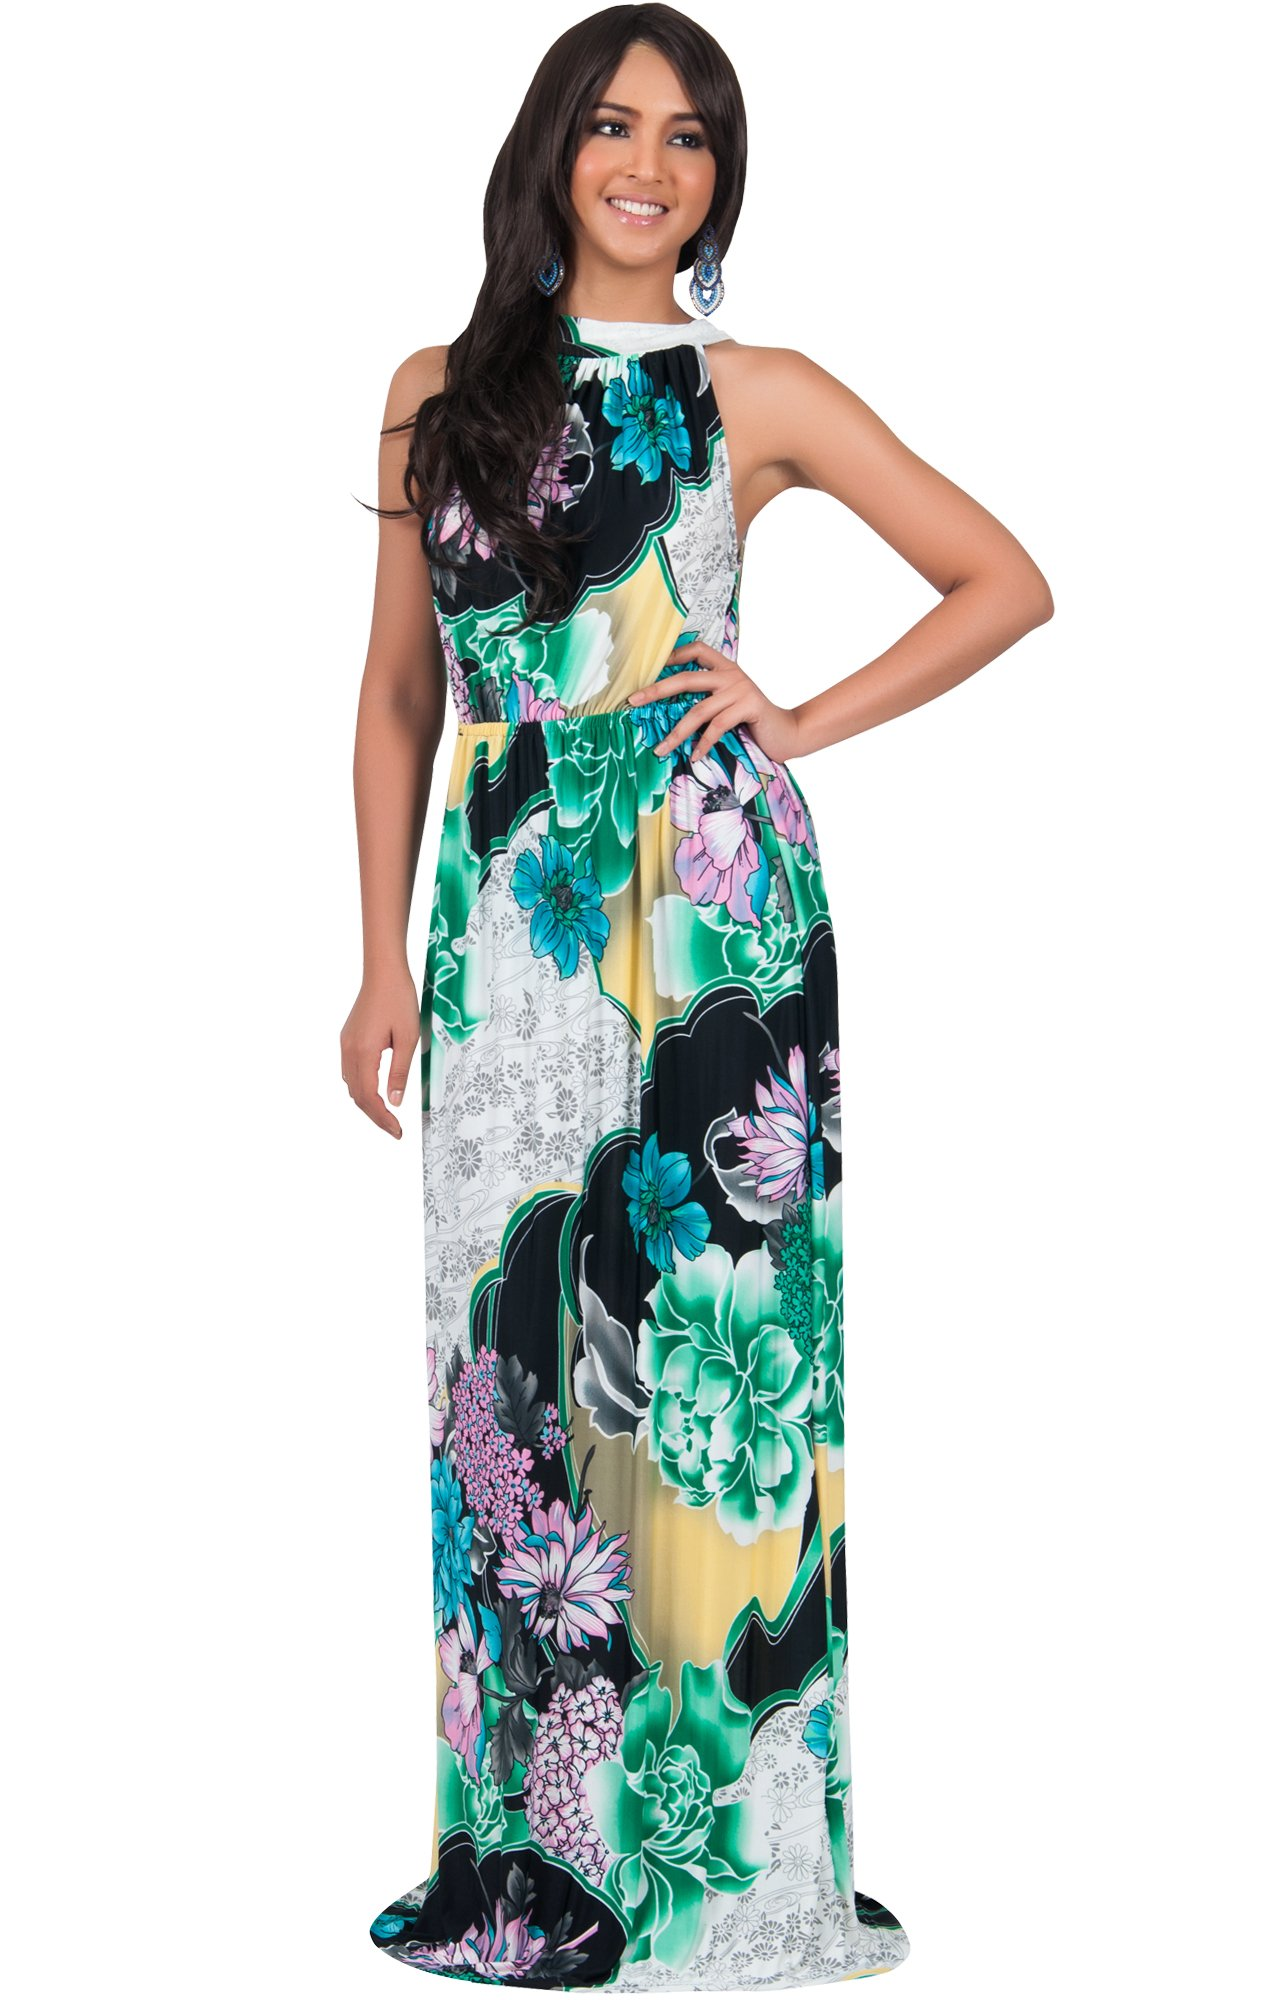 832560c3bef46 KOH KOH Plus Size Womens Long Summer Flowy Sexy Halter Neck Sleeveless  Casual Floral Print Printed Beach Hawaiian Spring Boho Gown Gowns Maxi Dress  Dresses, ...